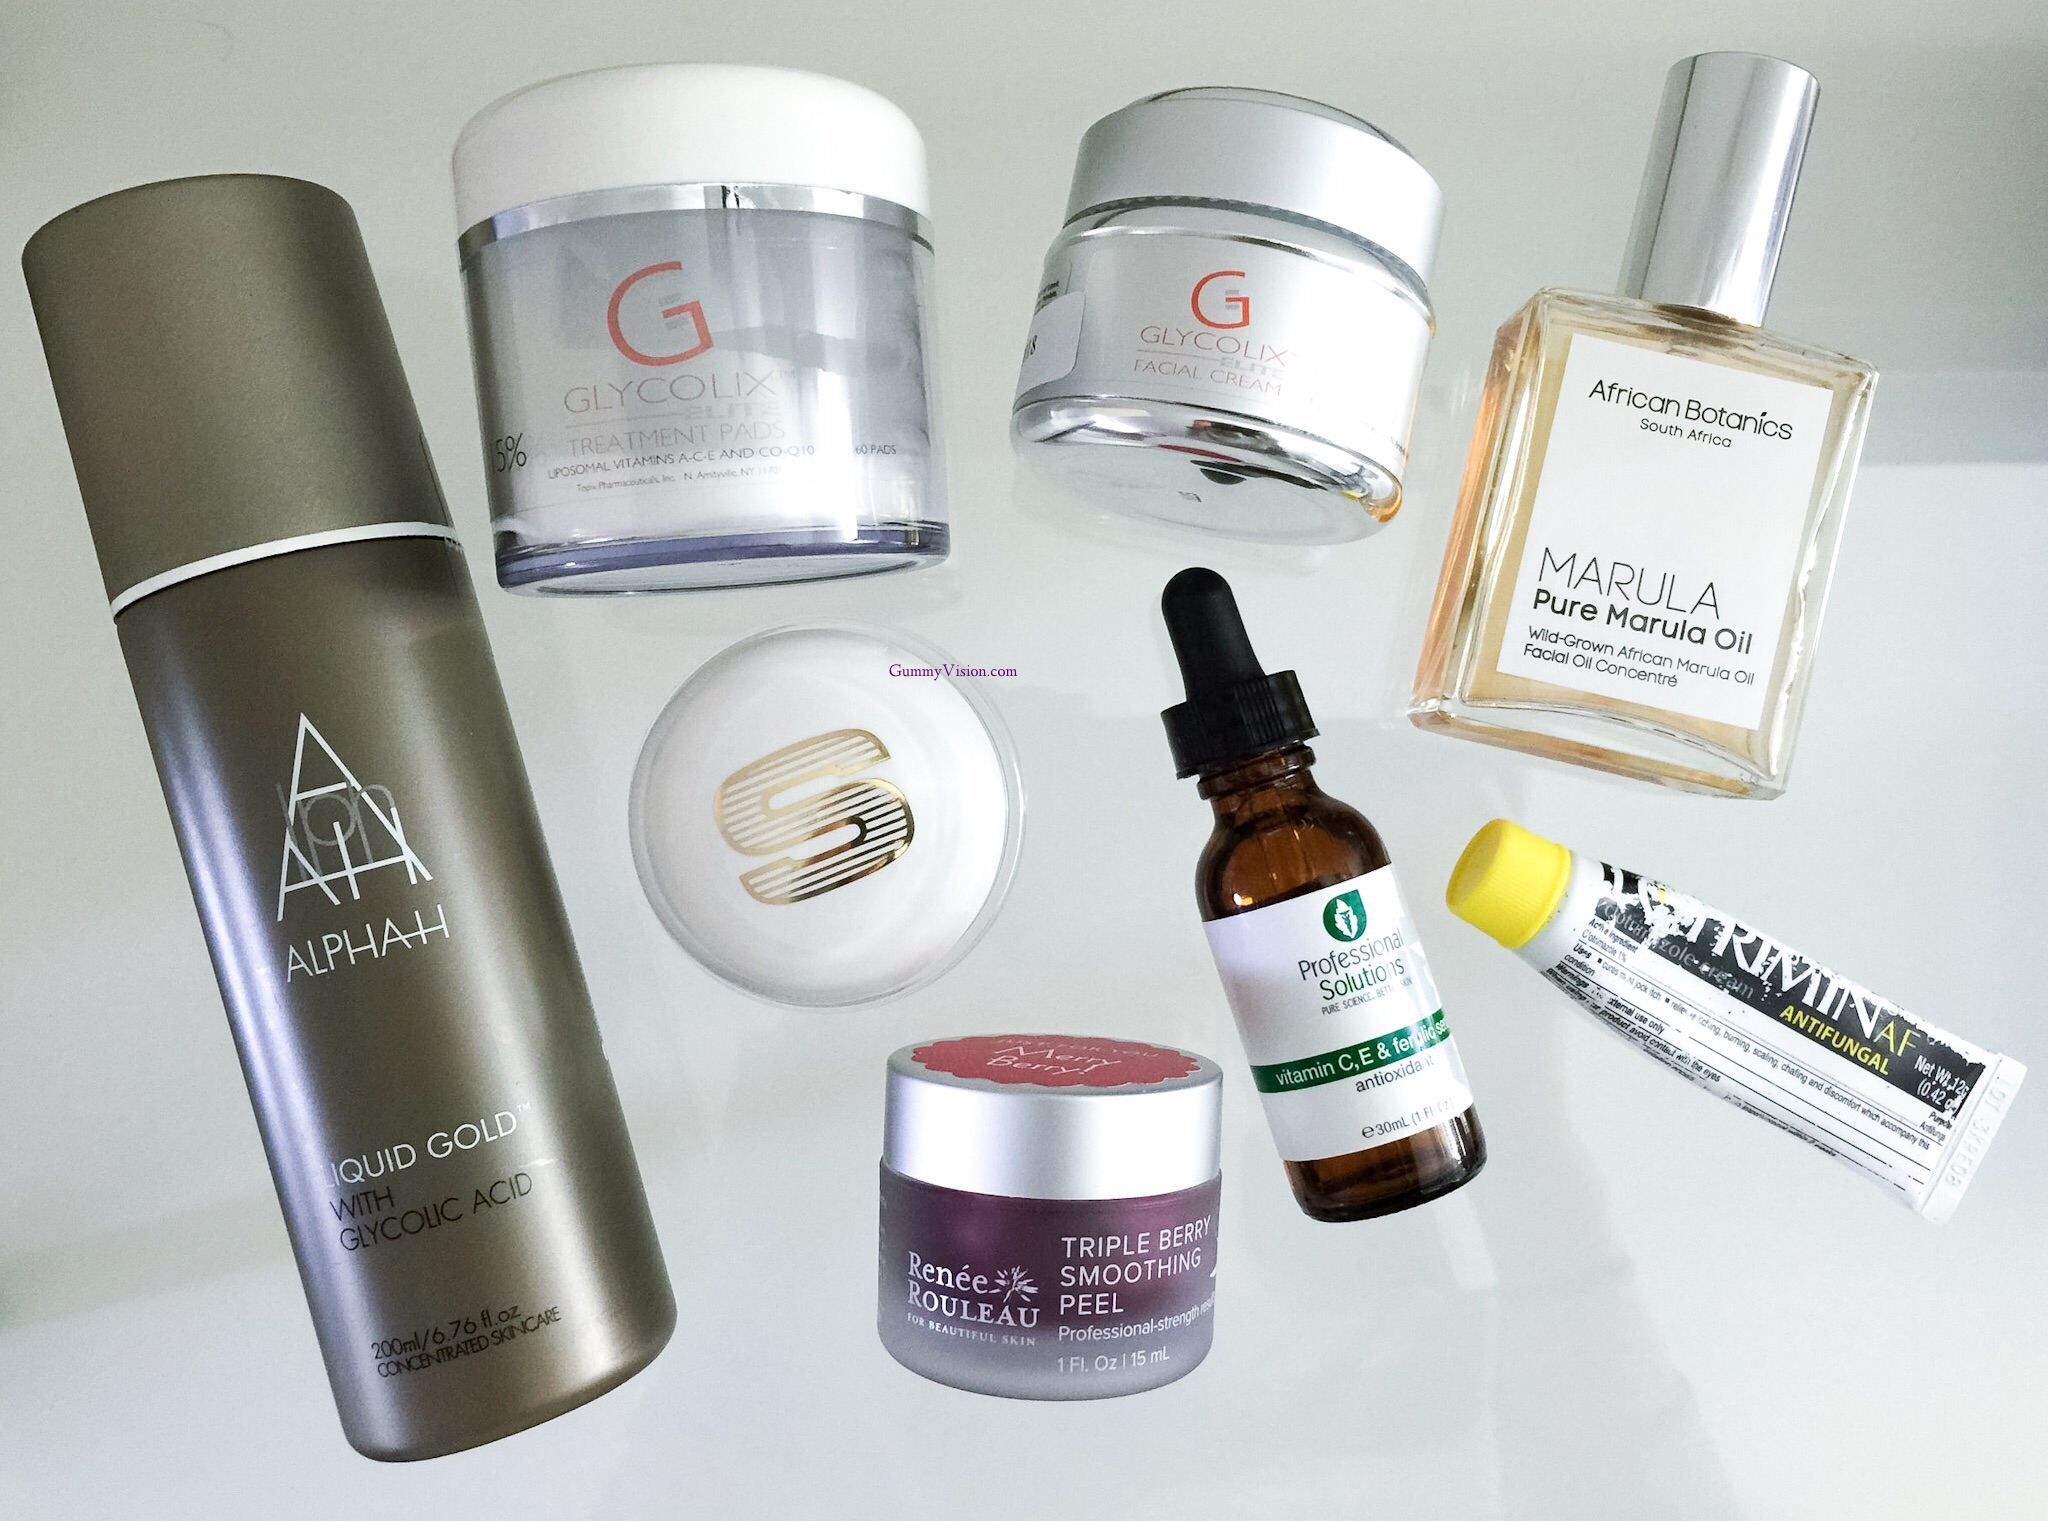 2014 Skincare Favorites - www.gummyvision.com - Alpha H Liquid Gold, Glycolix Elite 15% Treatment Pads 15%, Professional Solutions Vitamin C,B,E & Ferulic Serum, African Botanics Pure Marula Oil, Lotrimin Antifungal, Renee Rouleau Triple Berry Smoothing Peel